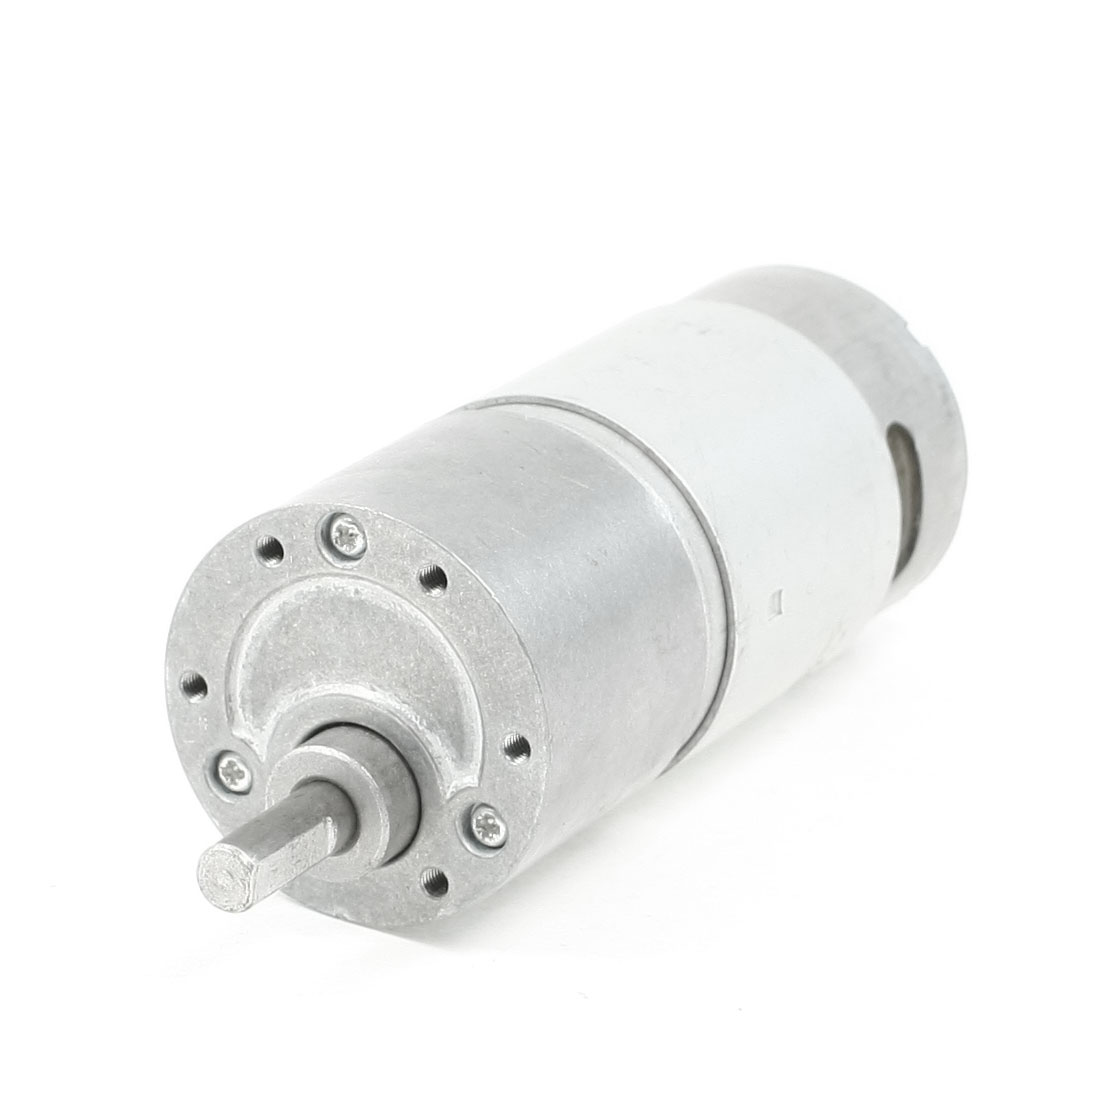 Uxcell(R) 300RPM 12V 0.6A High Torque Electric Speed Reduce DC Geared Motor